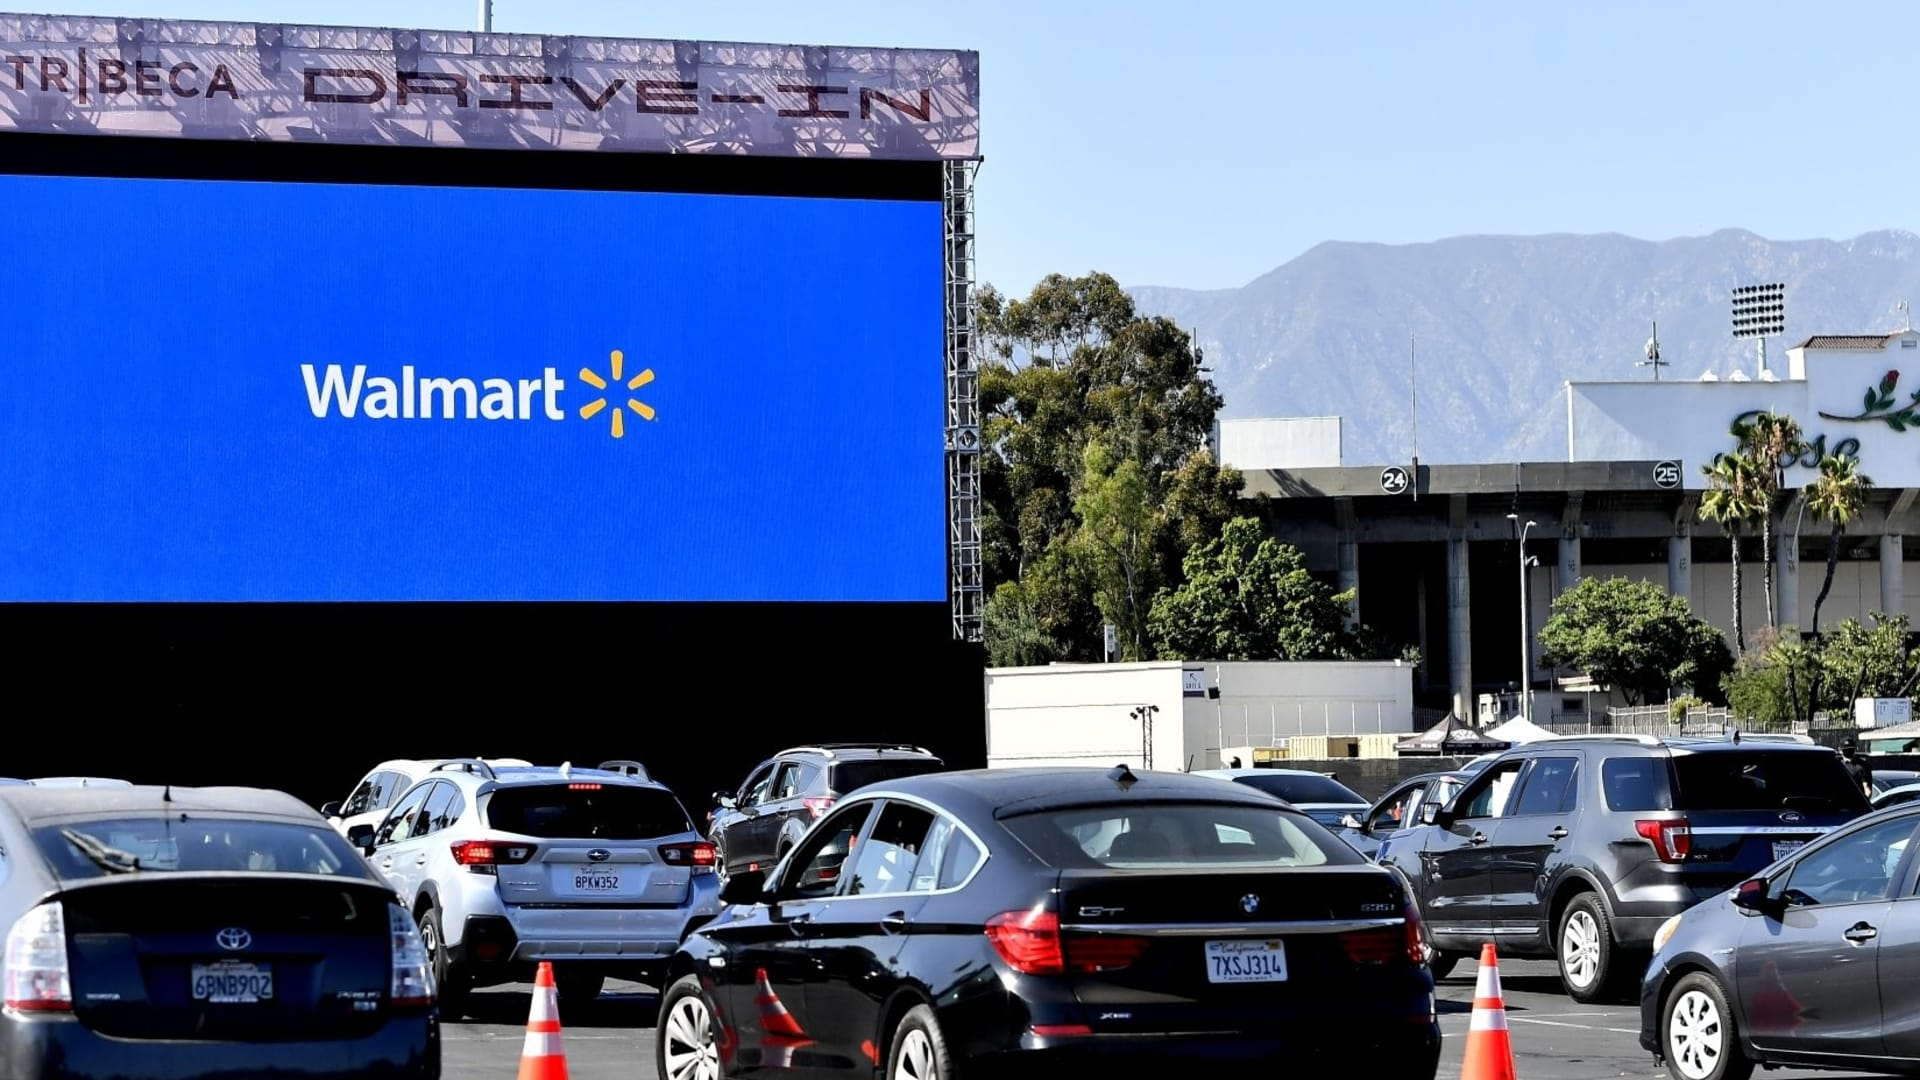 Walmart Just Made a Bold Move That Families Are Going to Love. It's a Lesson in Emotional Intelligence